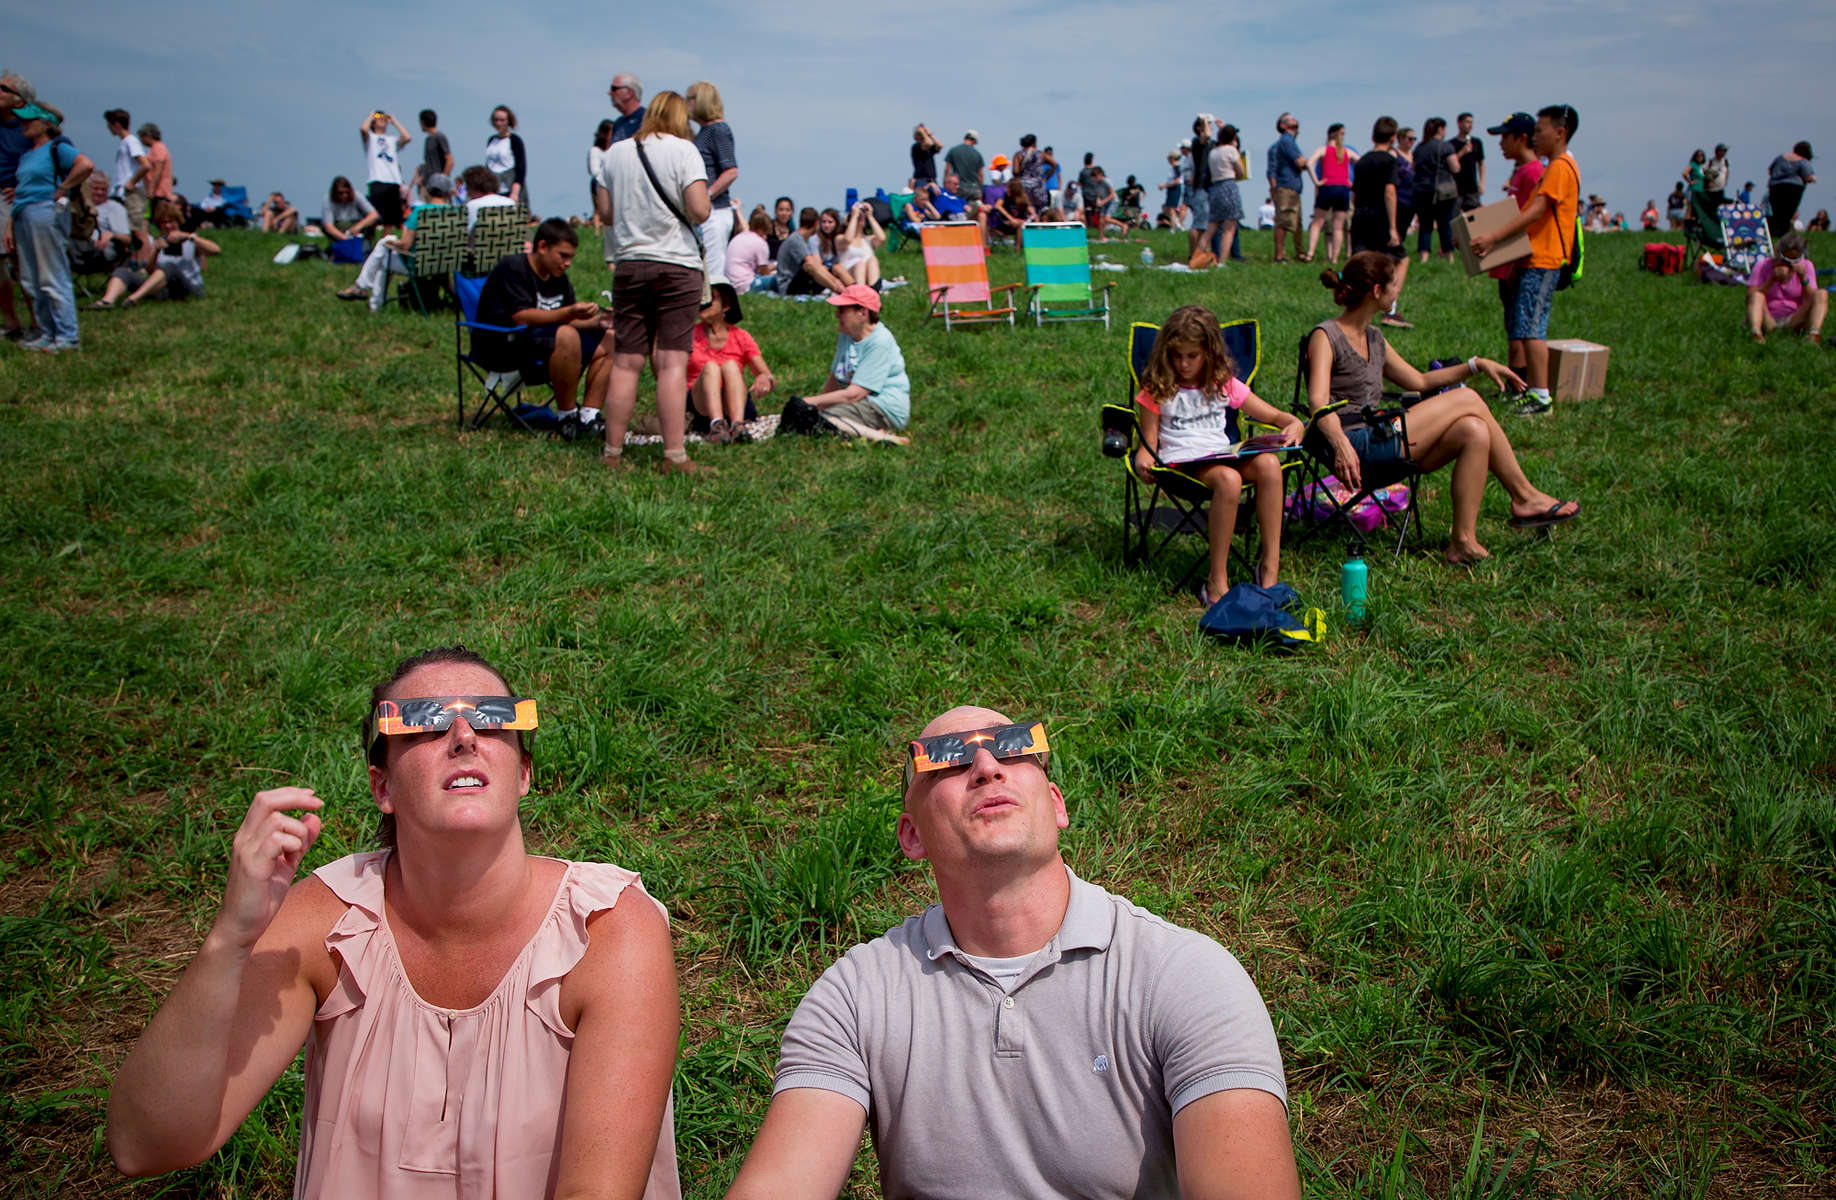 People watch a solar eclipse on Horsebarn Hill on the UConn campus Monday, August 21, 2017 in Storrs. (G.J. McCarthy / UConn Foundation)